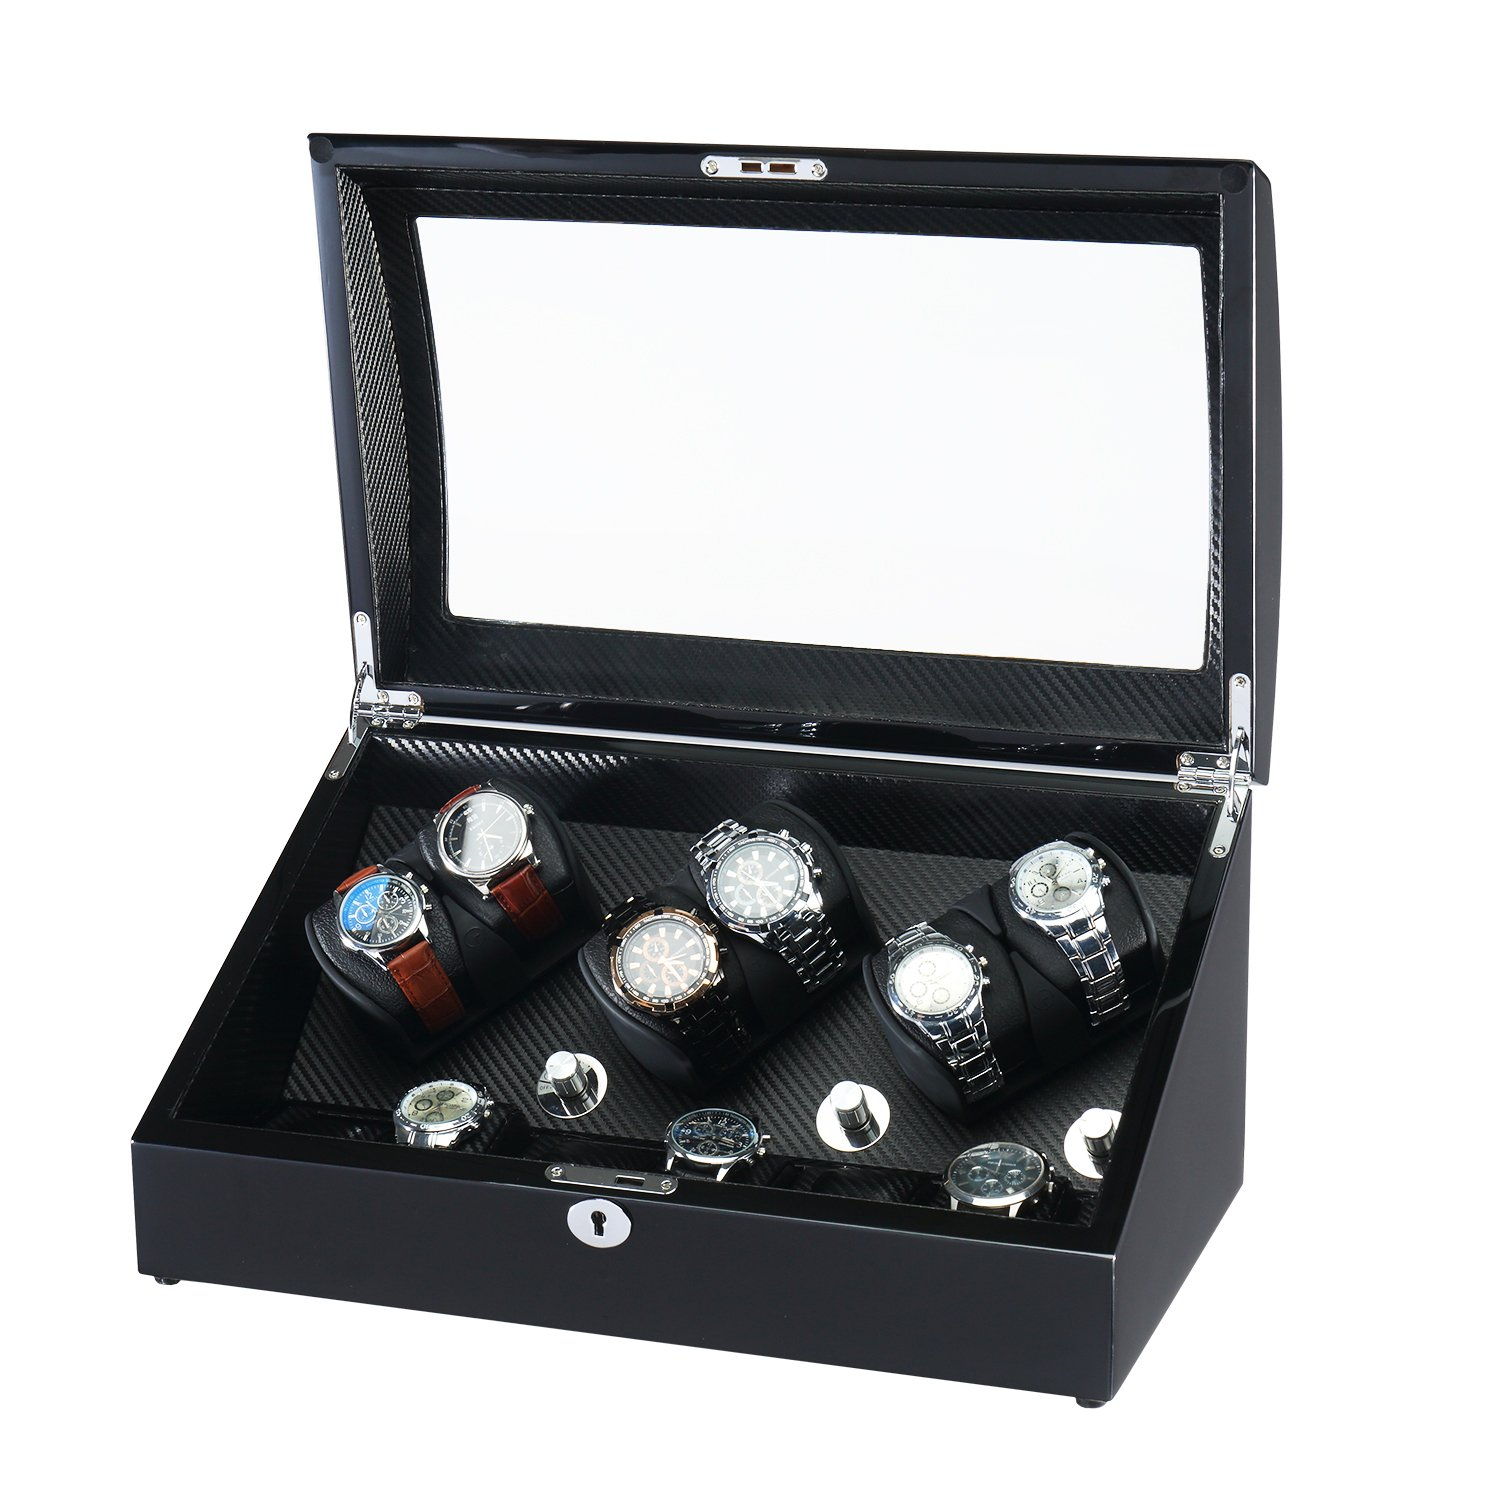 OLYMBROS Wooden Automatic Watch Winder 6+6 Storage Boxes for 12 Watches with LED Light